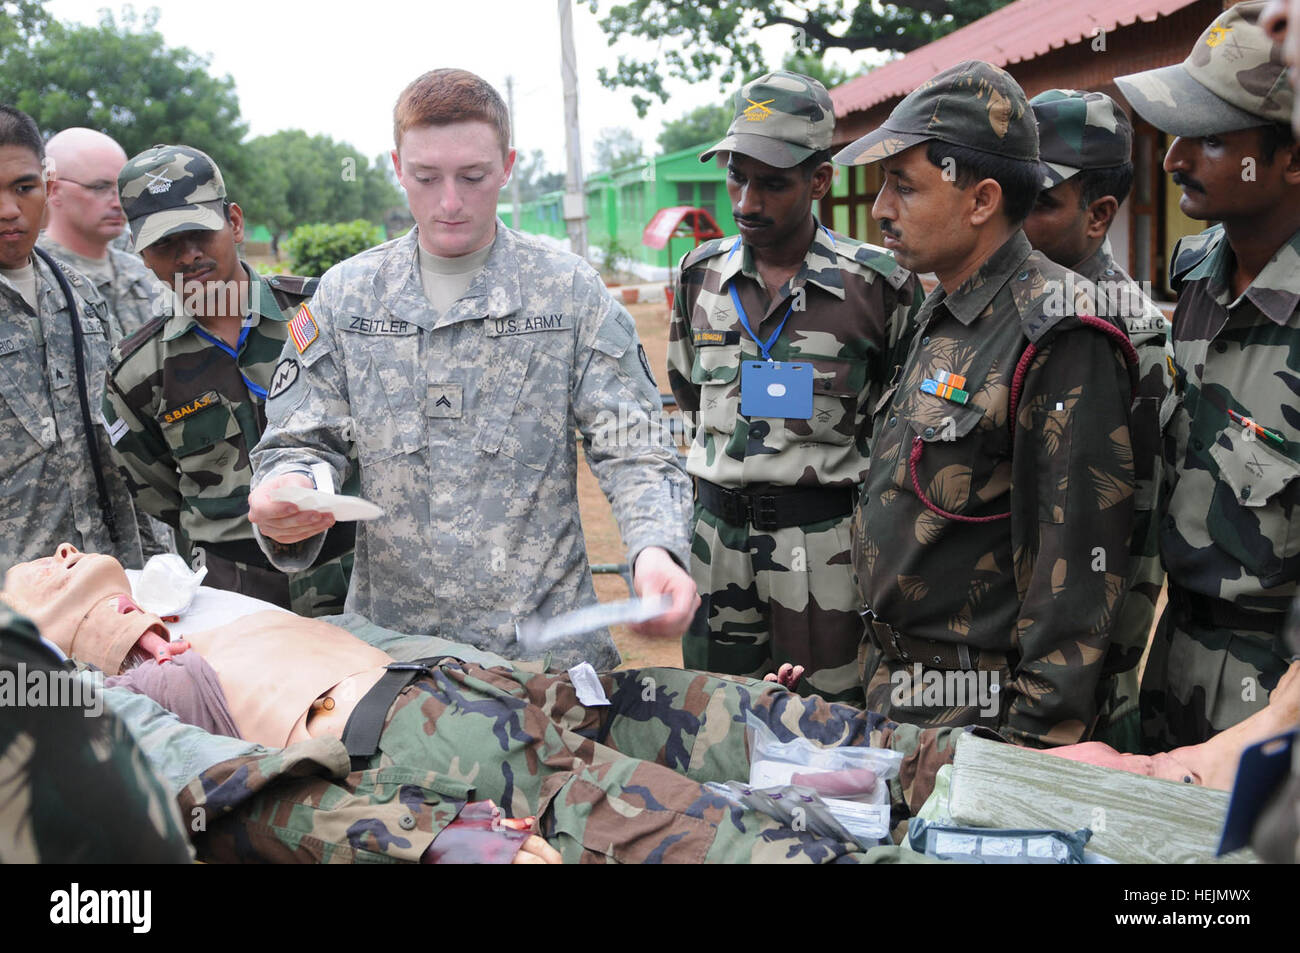 CAMP BUNDELA India Oct 12 2009 – Cpl Kevin Zeitler